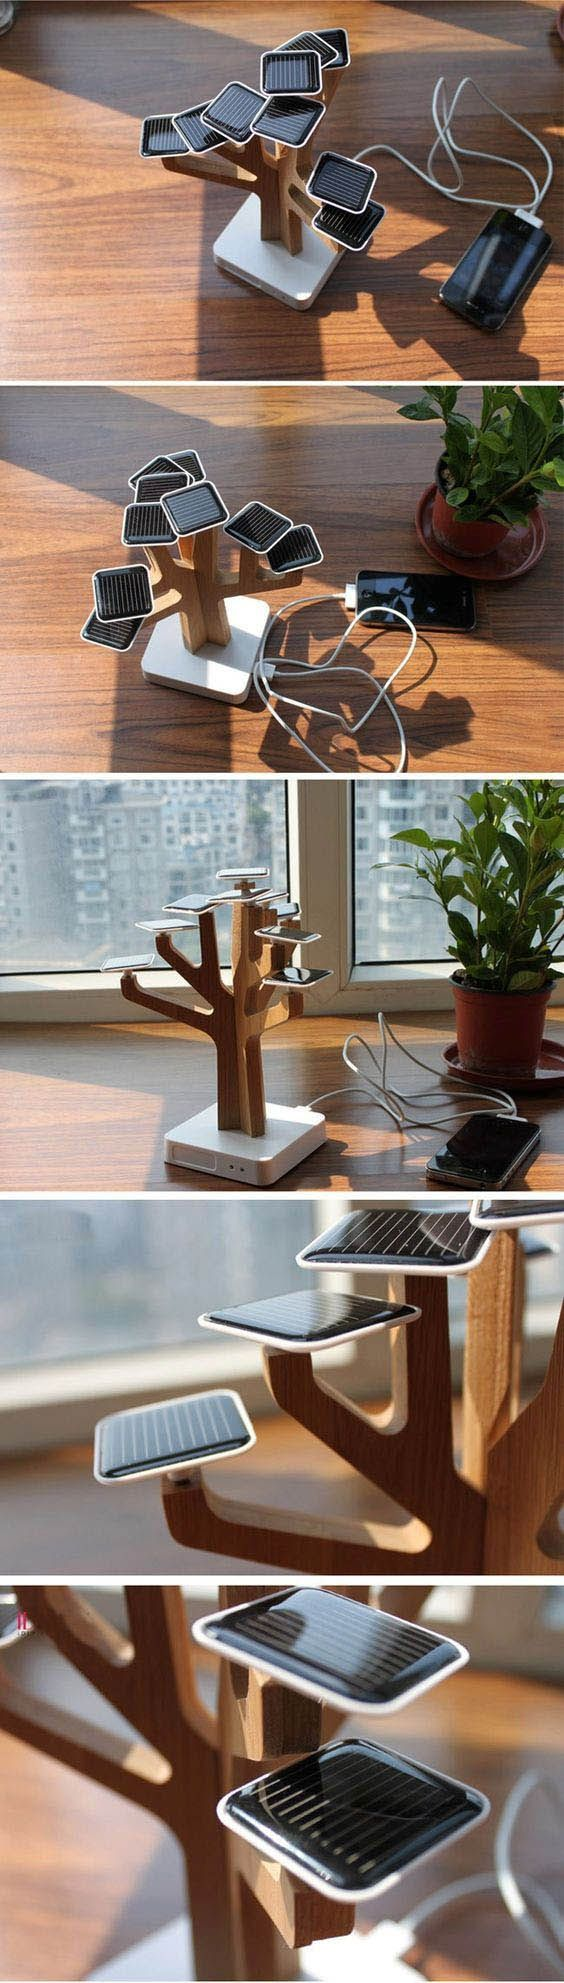 Solar-powered tree to charge mobile phones. Fits as part of a decor. #decoration #person # #